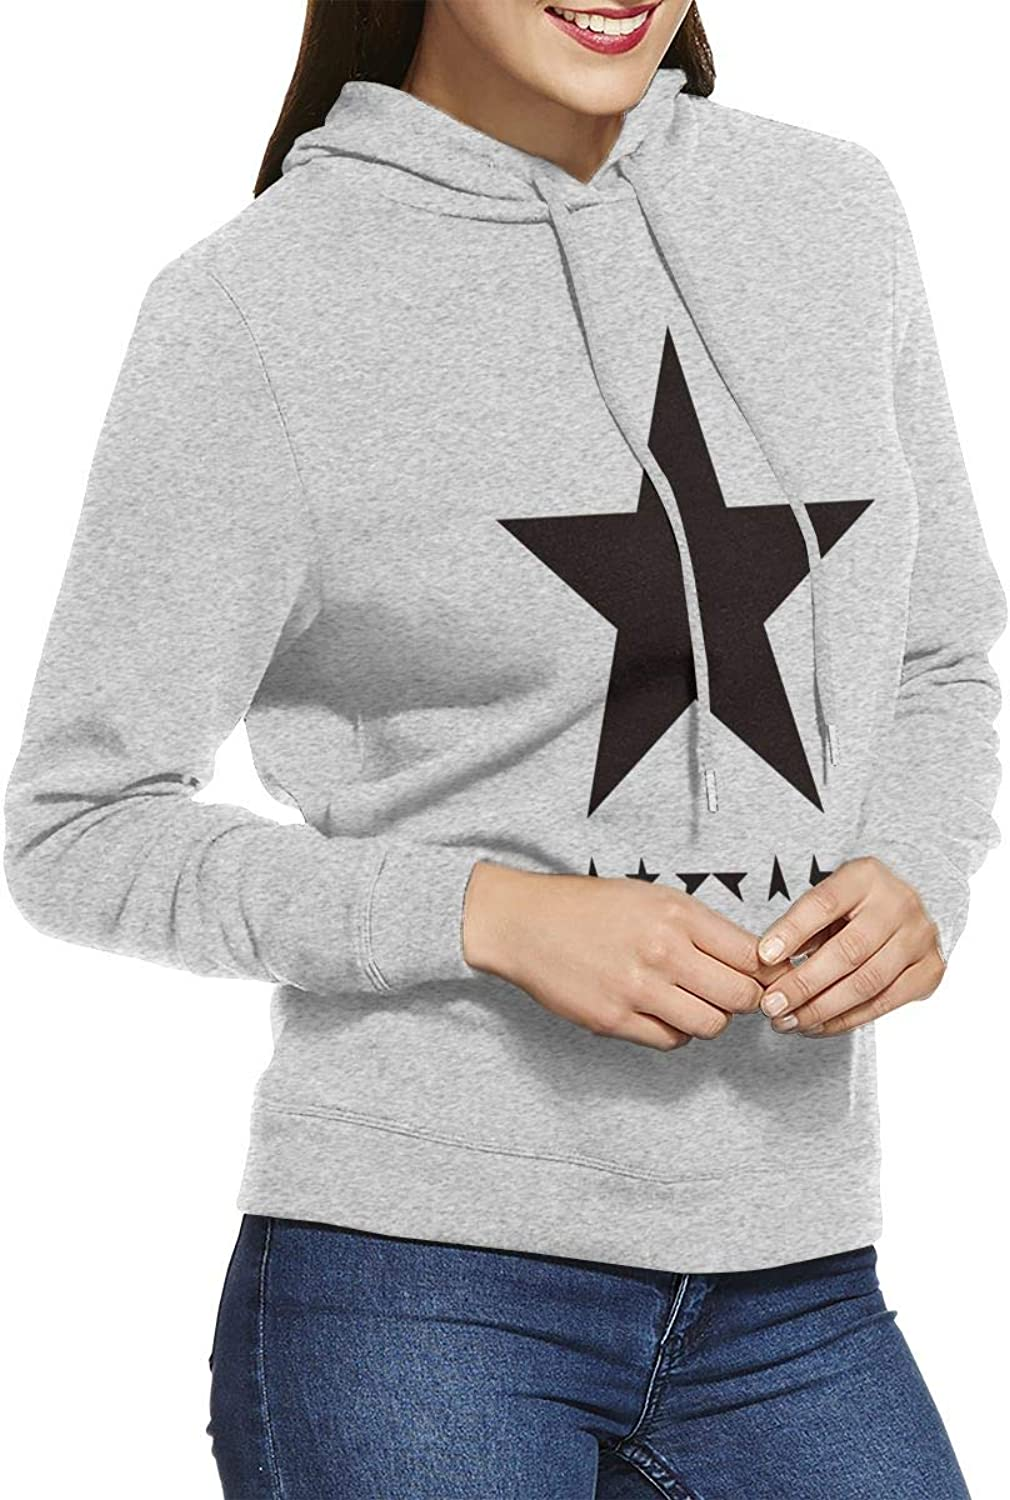 LIALUER David Bowie Blackstar Album Cover Women's Hoodies